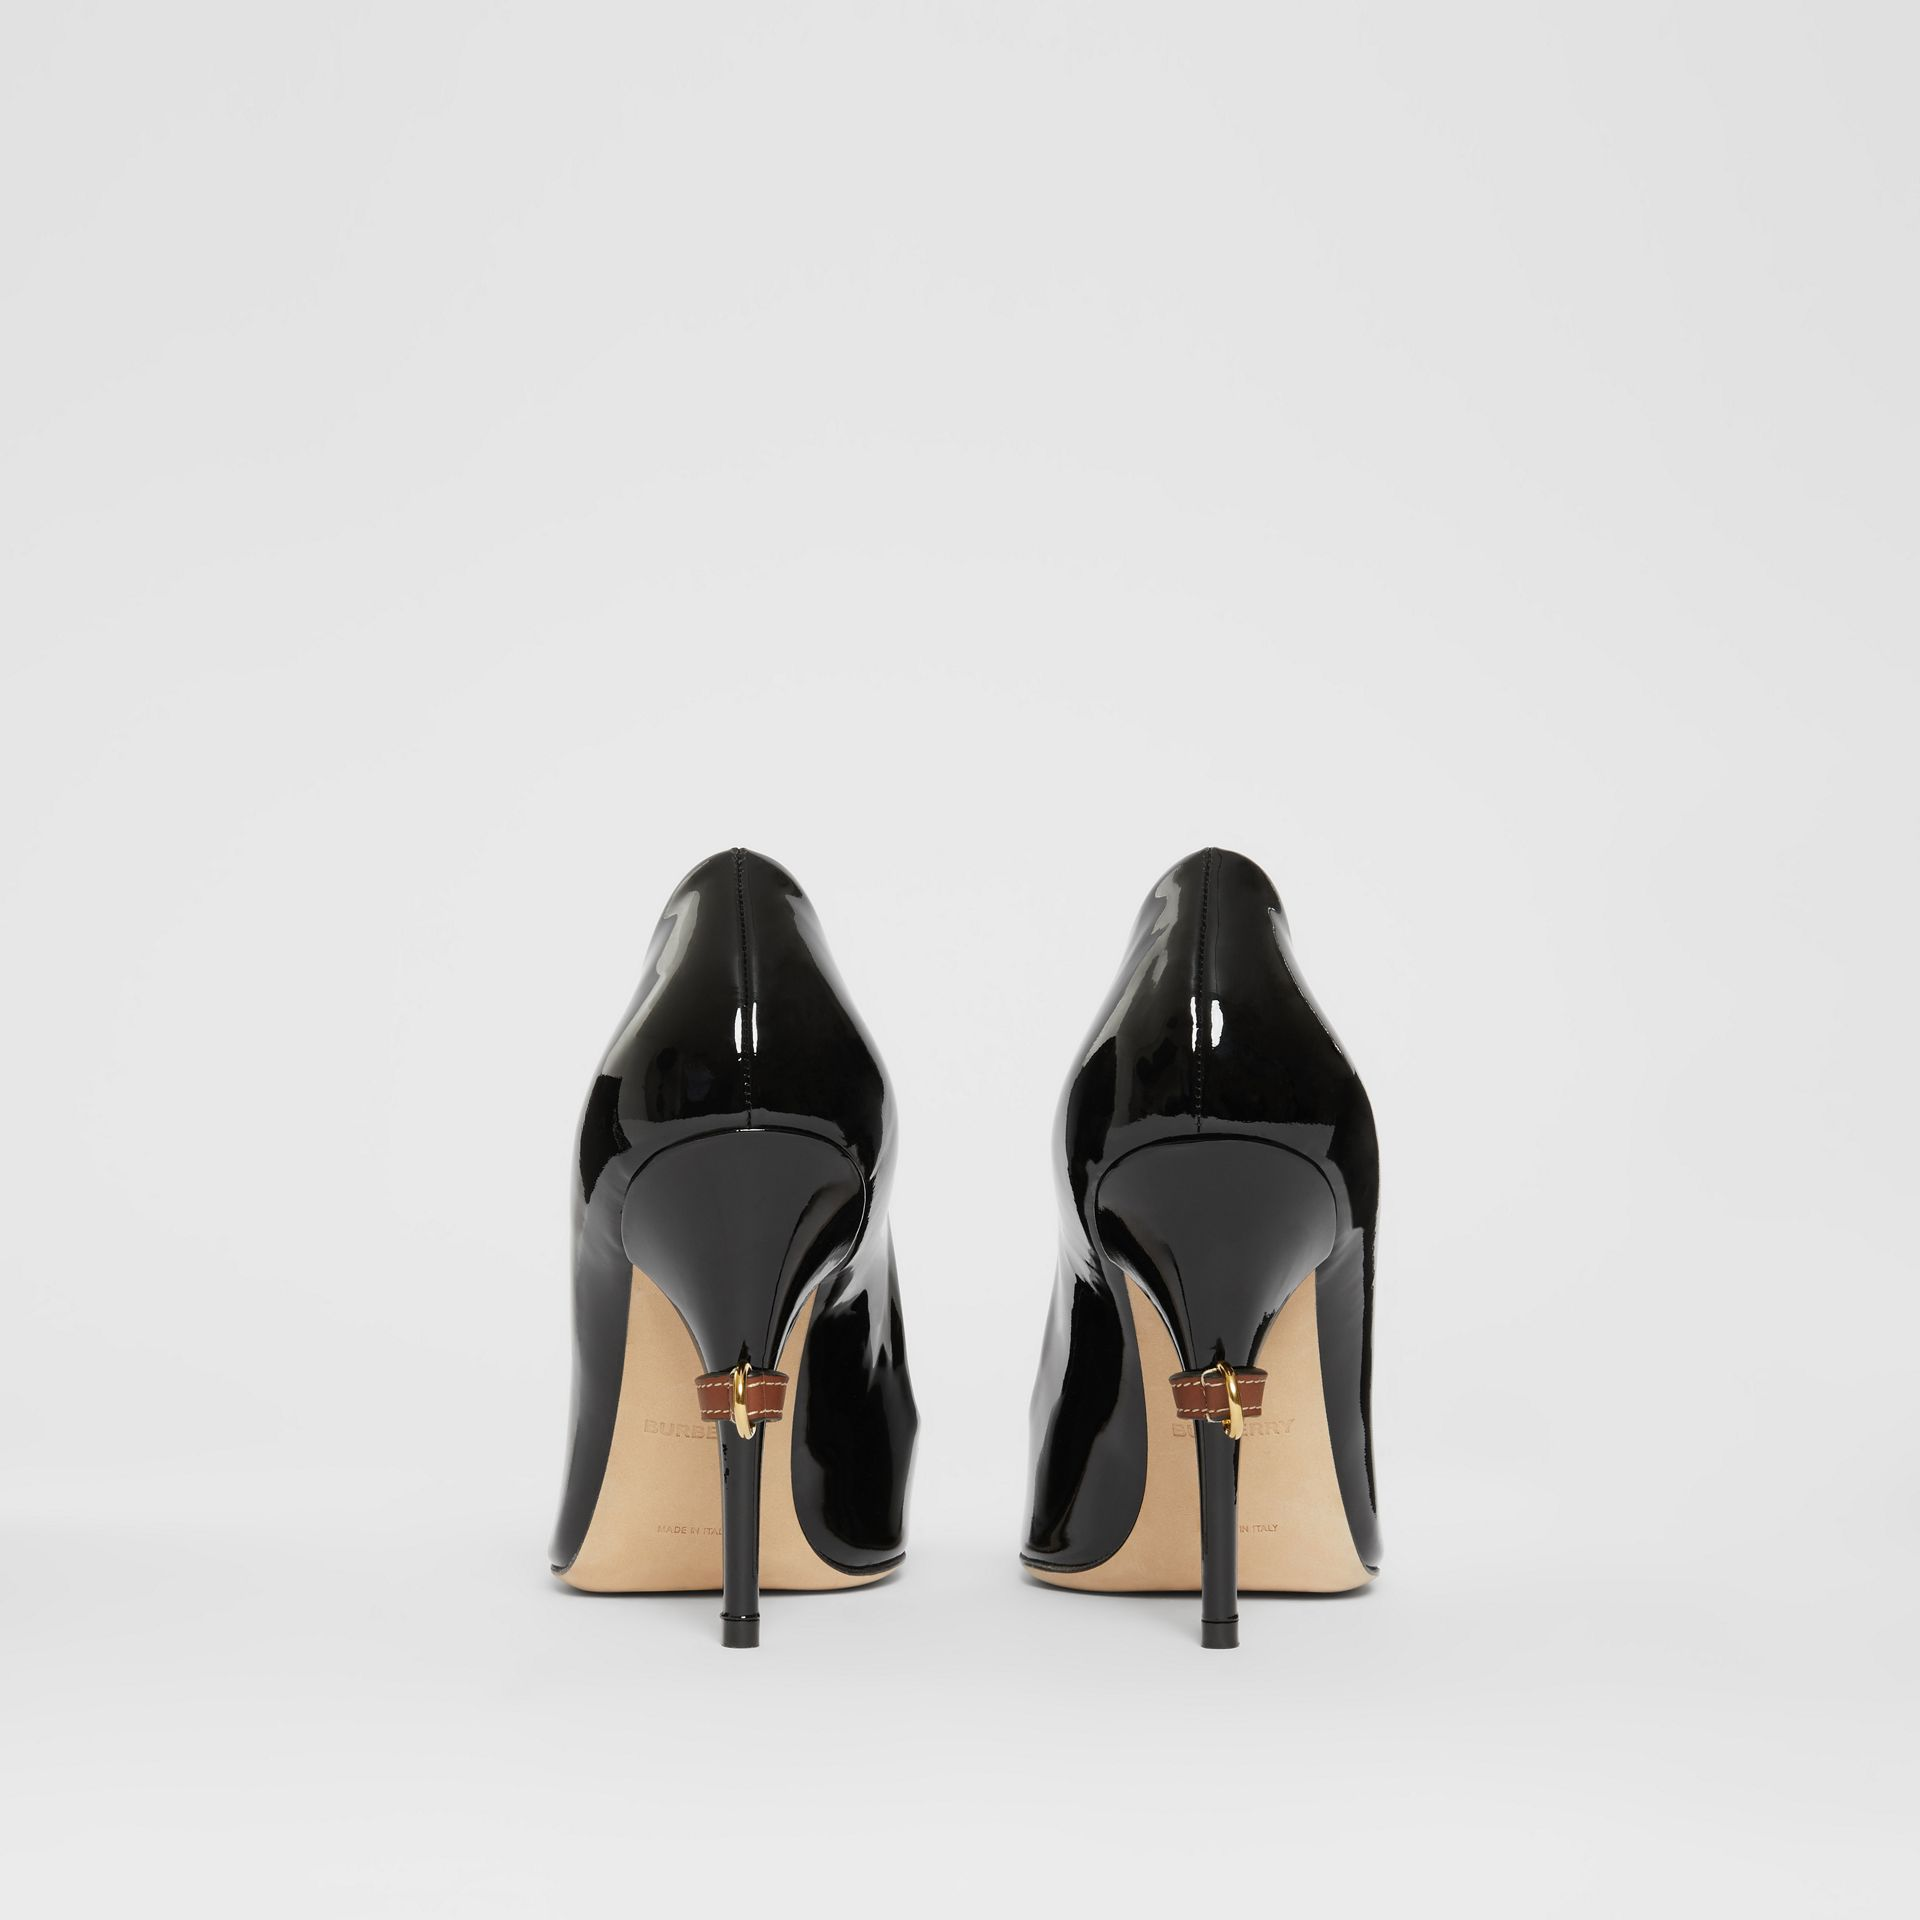 D-ring Detail Patent Leather Square-toe Pumps in Black - Women | Burberry United States - gallery image 4